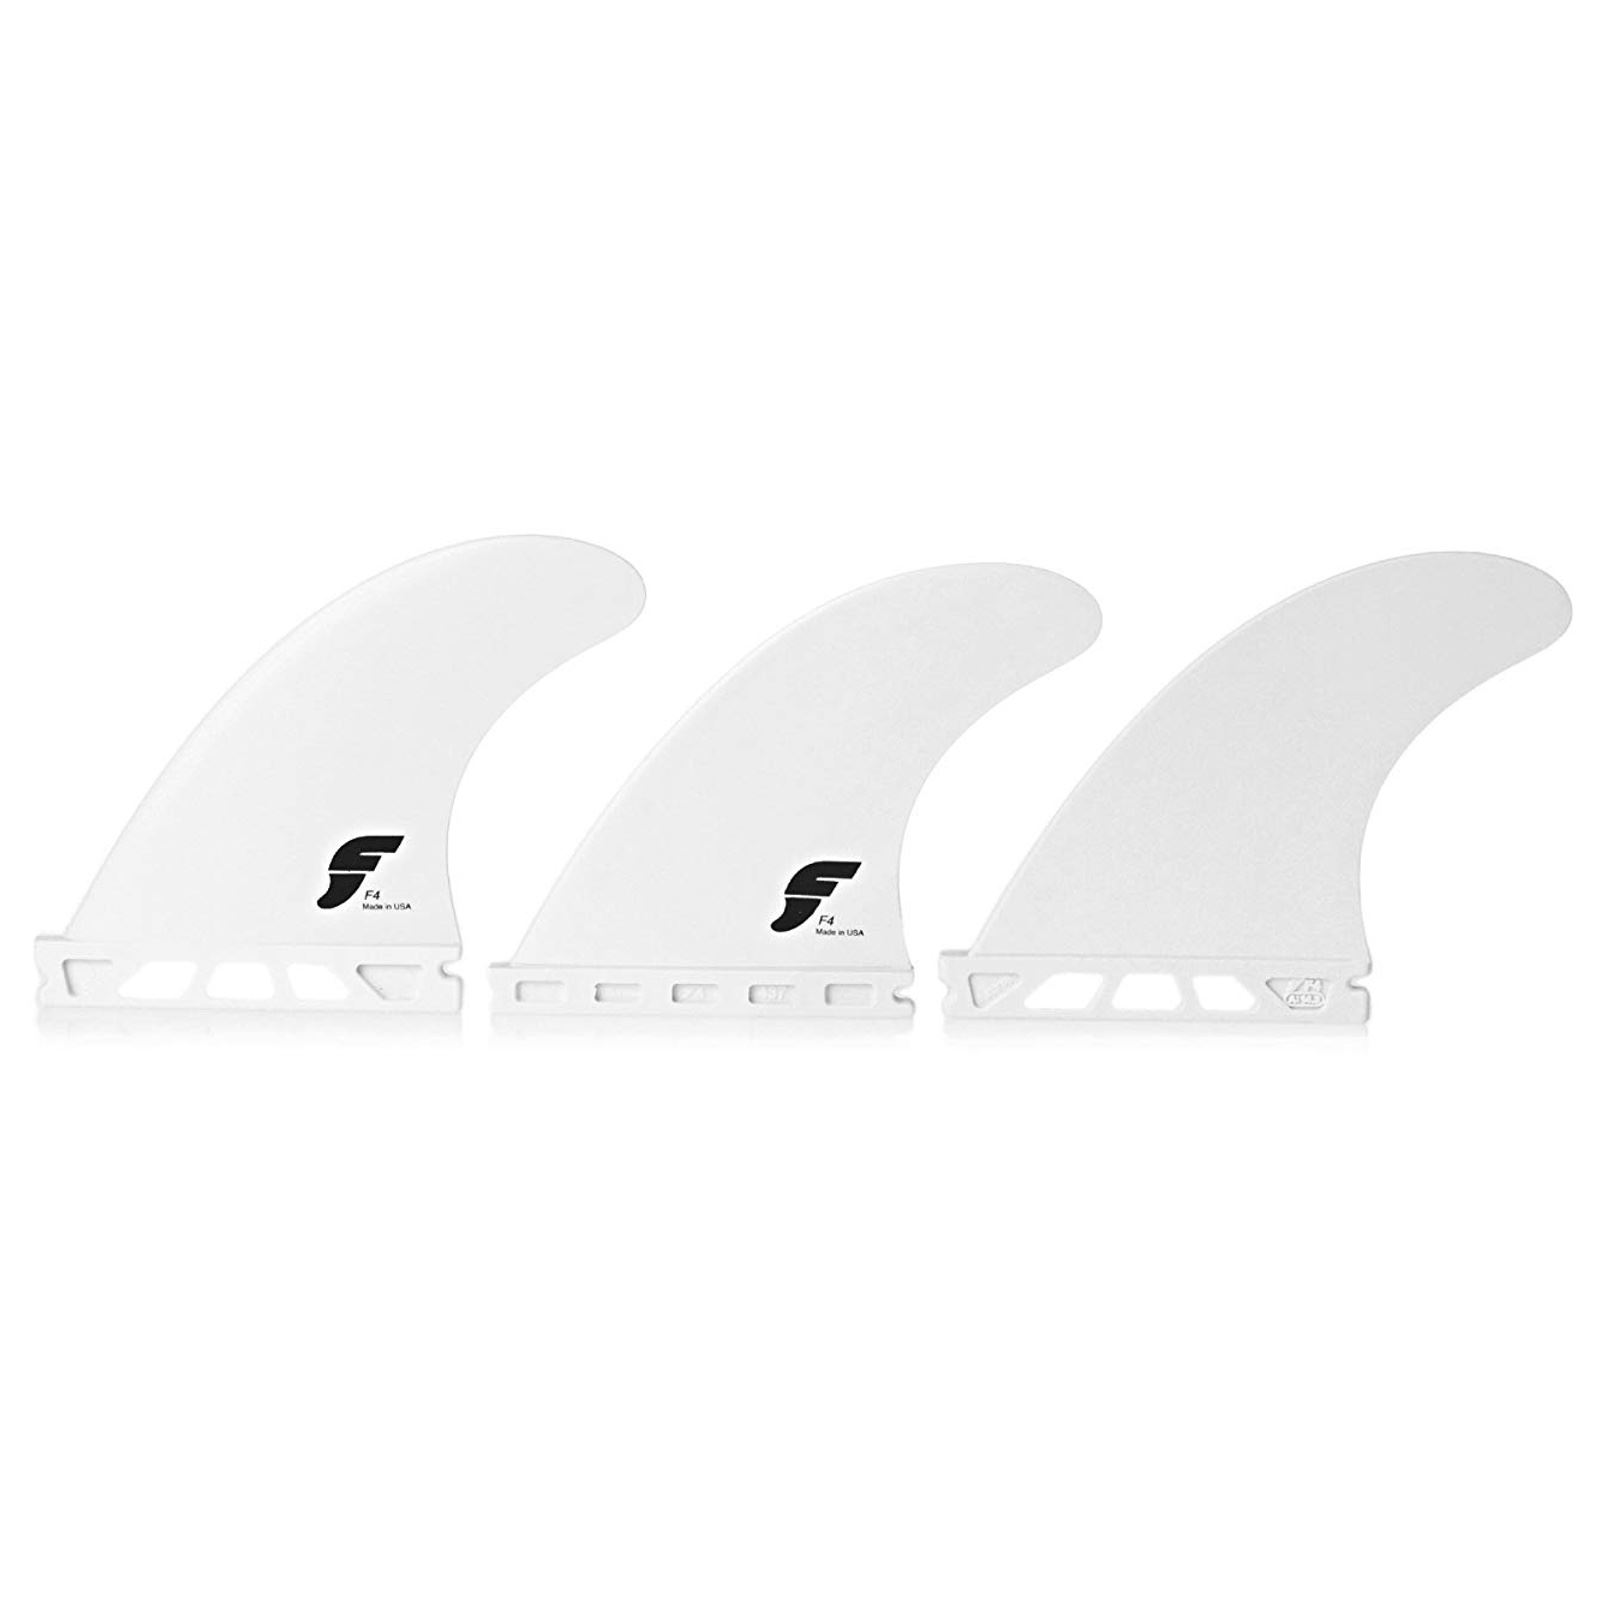 FUTURES Thruster Fin Set F4 Thermotech